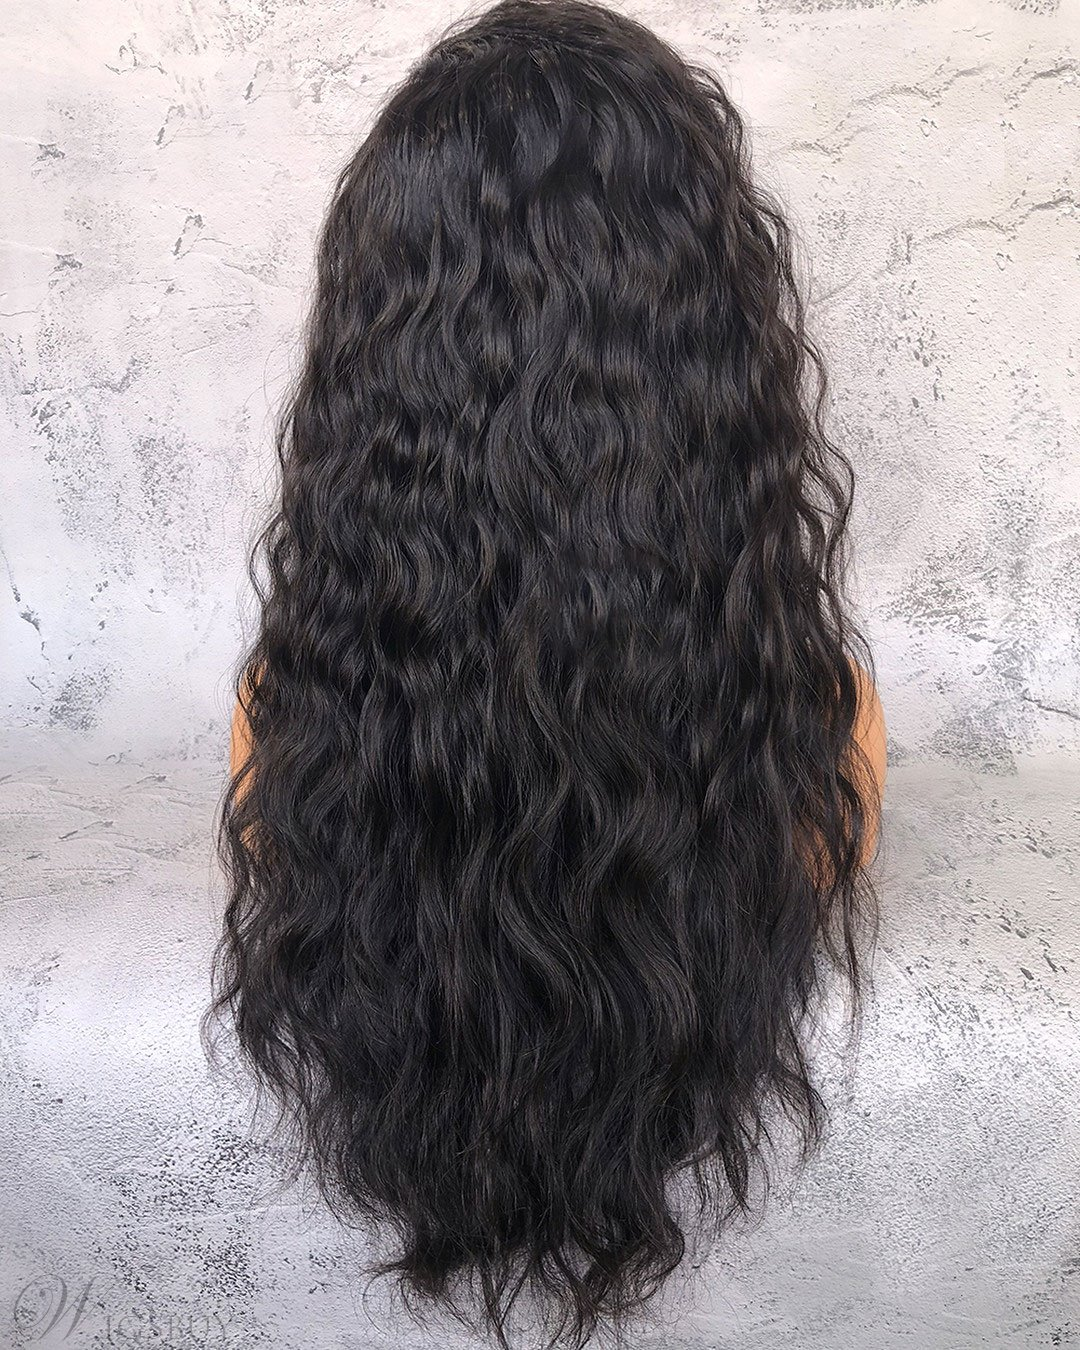 Afro Long Curly Synthetic Hair Lace Front Women Wig 26 Inches